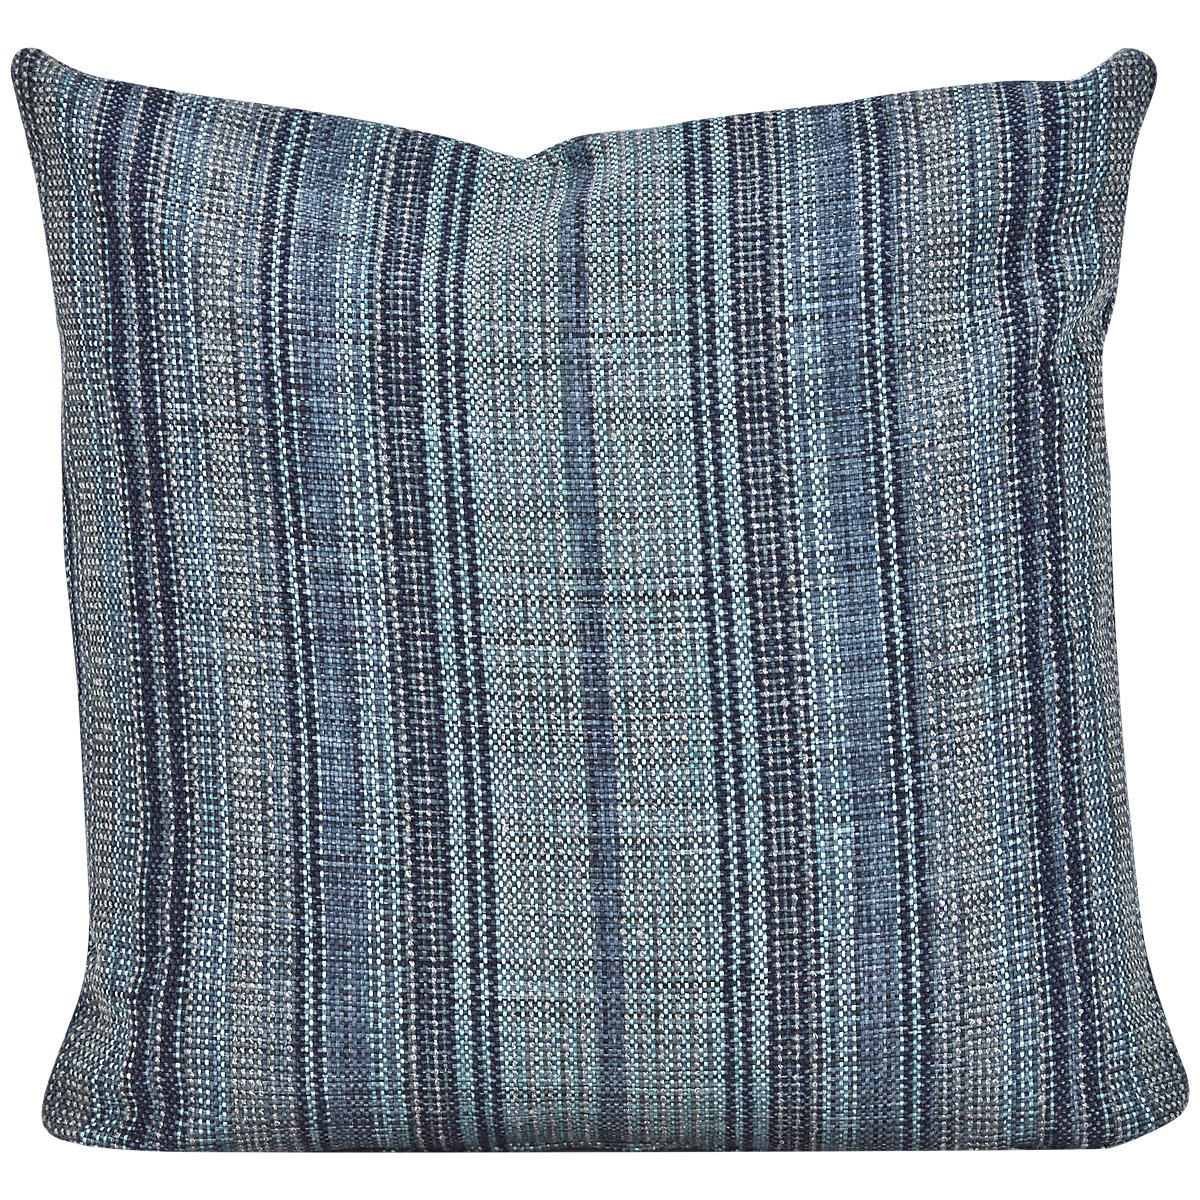 Nominate Blue Fabric Square Accent Pillow